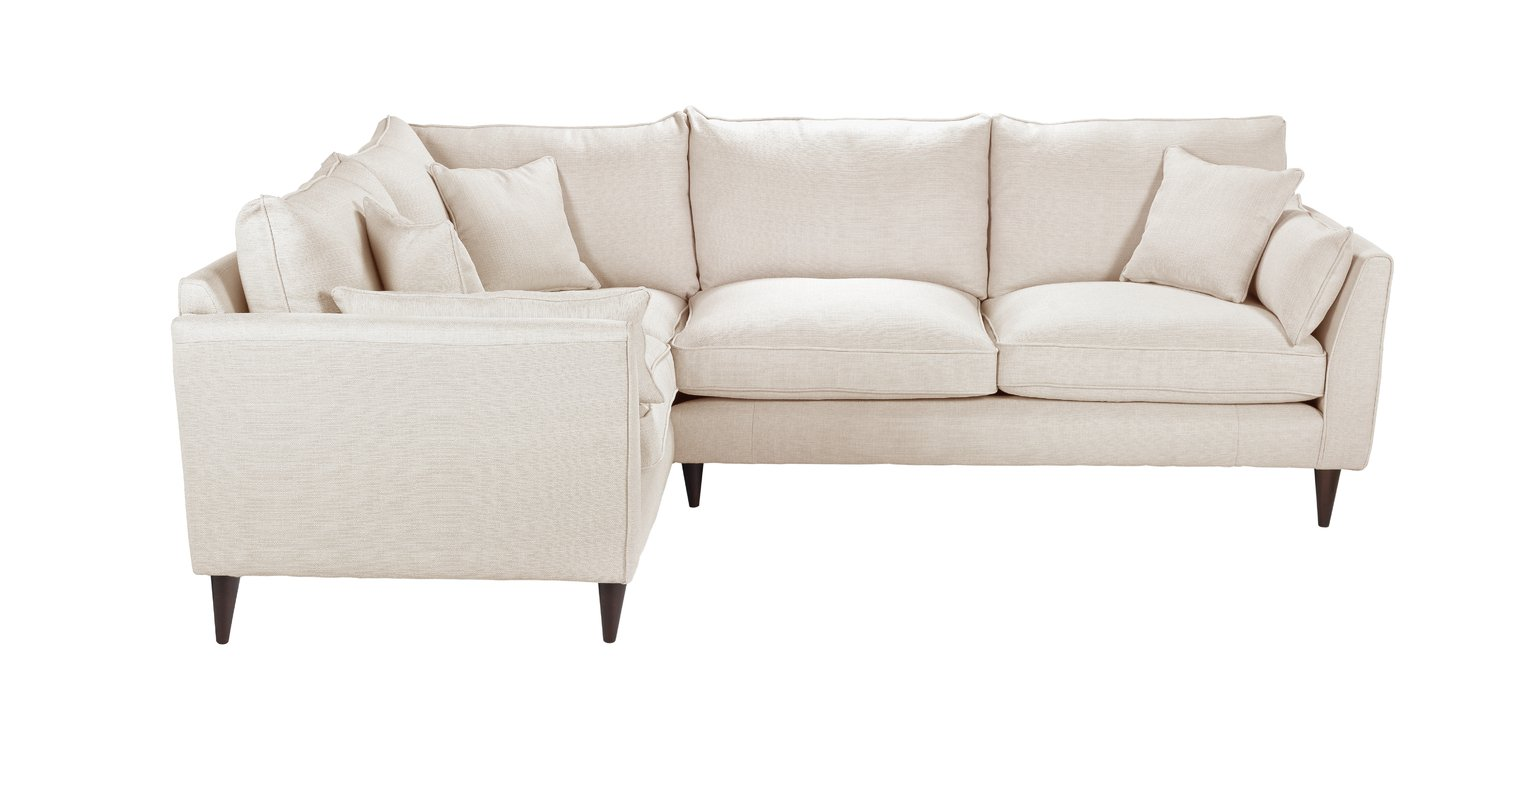 Argos Home Hector Left Corner Fabric Sofa - Natural Linen